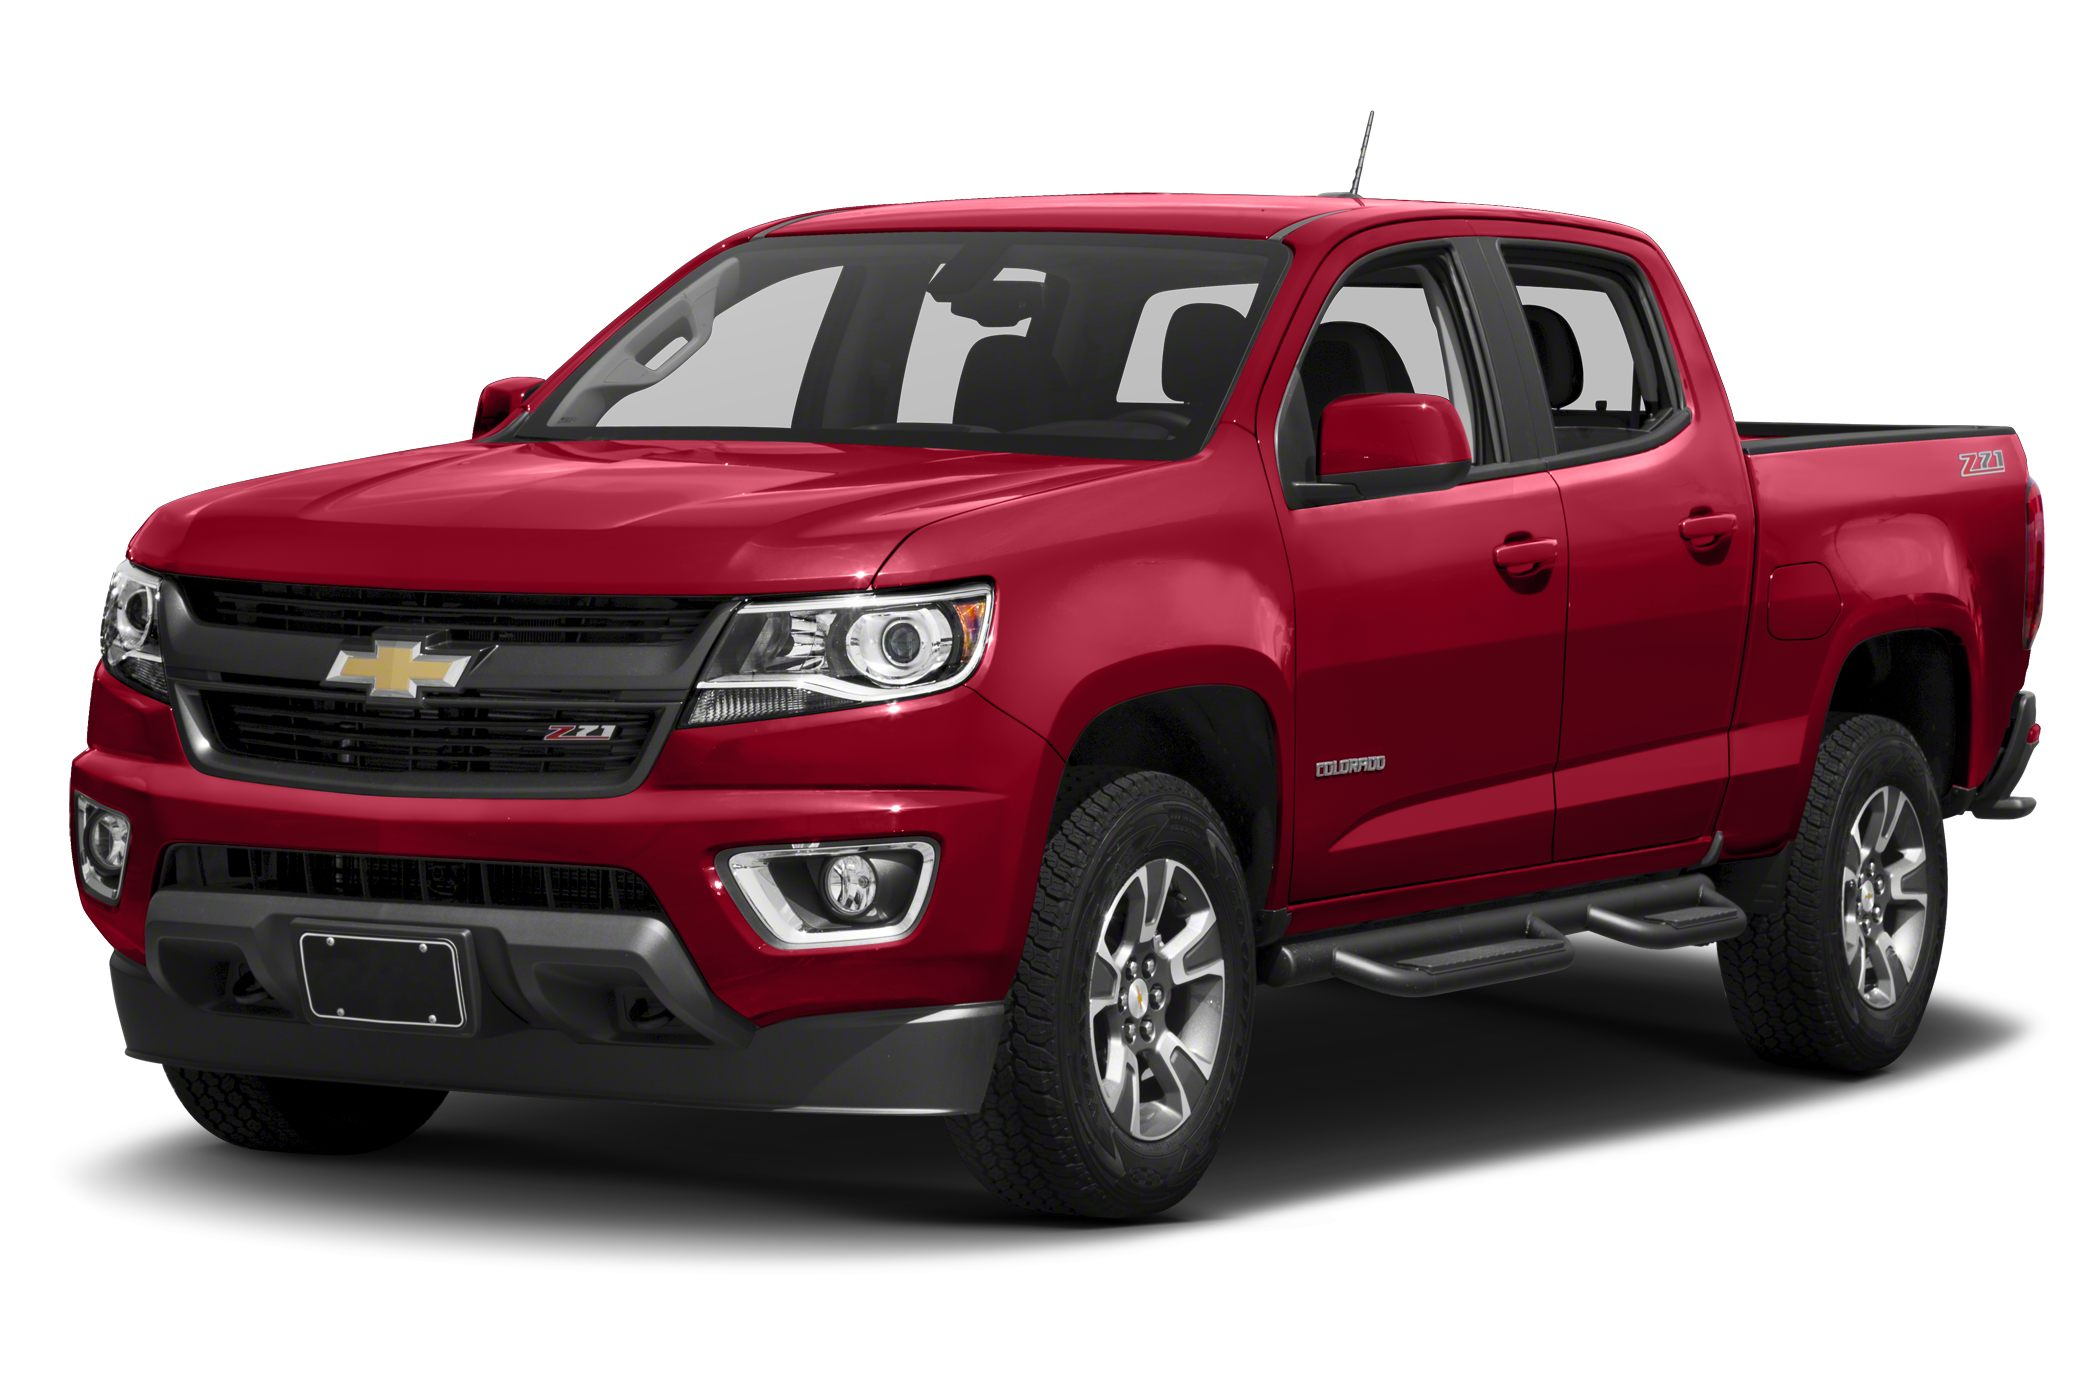 2016 Chevrolet Colorado Z71 Stock 167190 VIN 1GCGSDE32G1335770